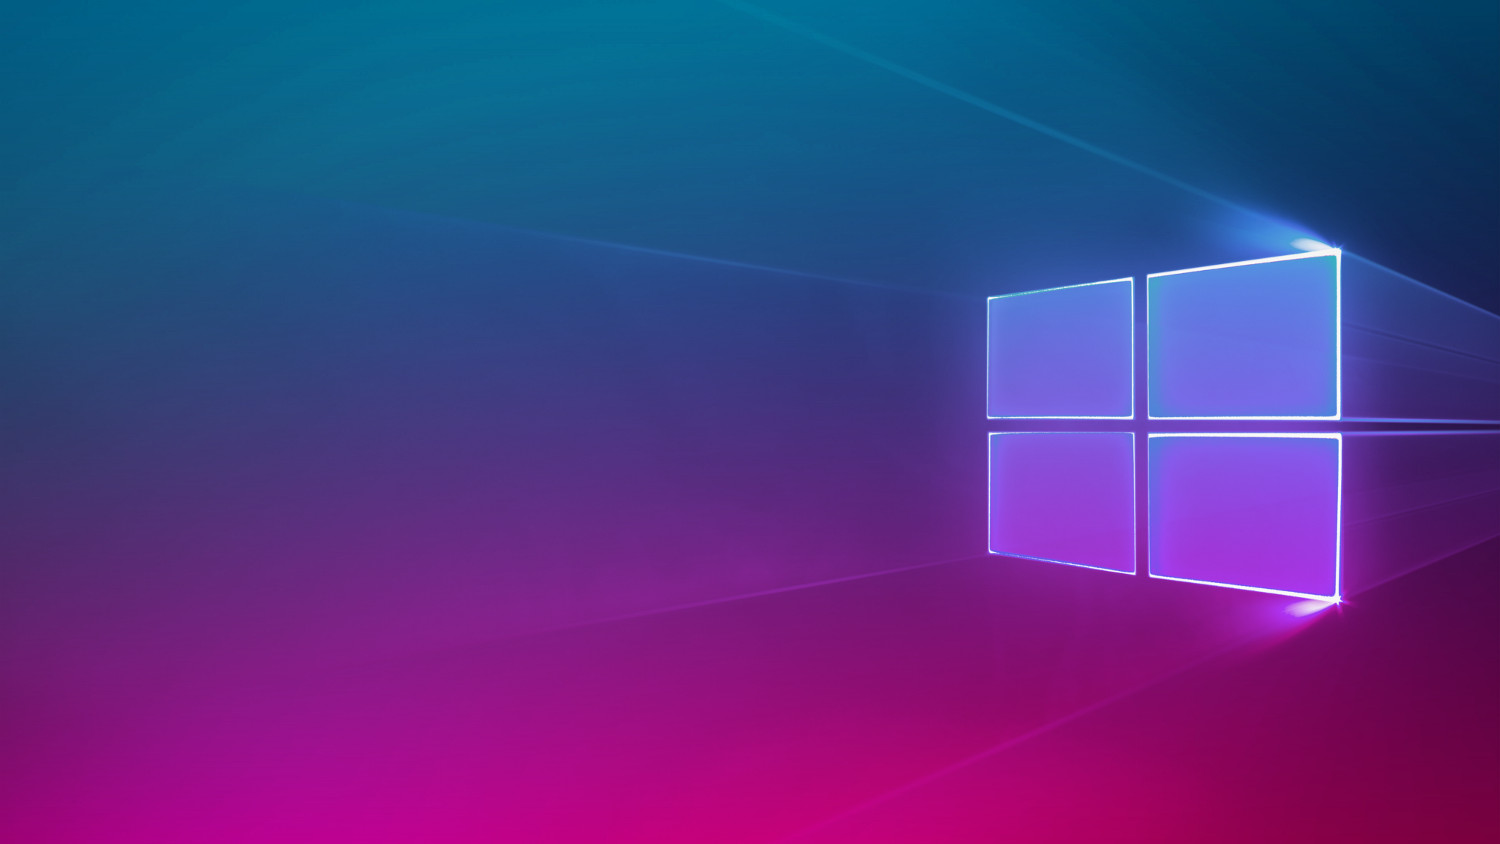 Windows 10 will be easier with the new feature